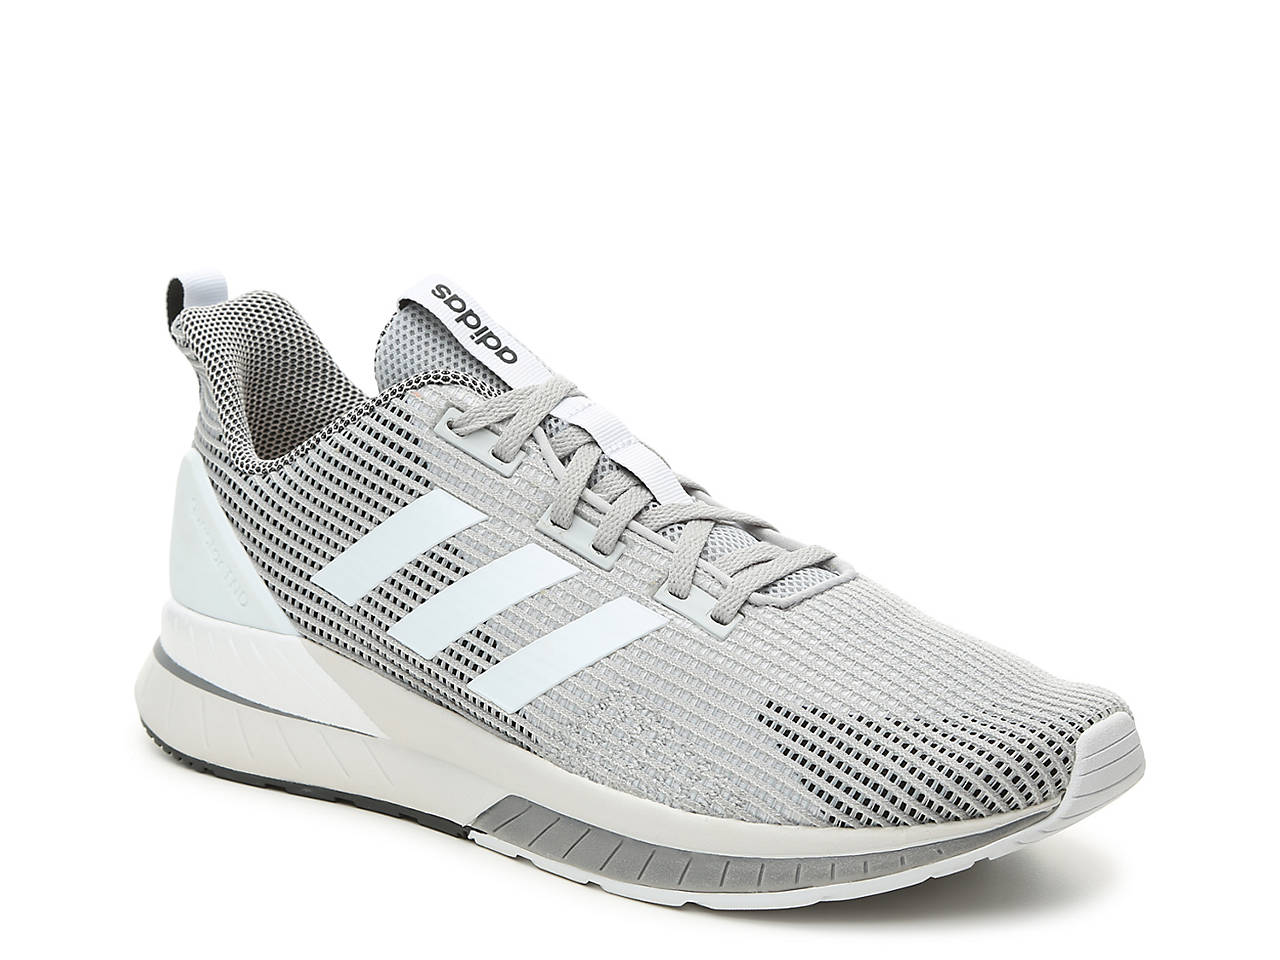 dfbc4a041ac8 adidas Questar TND - Men s Men s Shoes